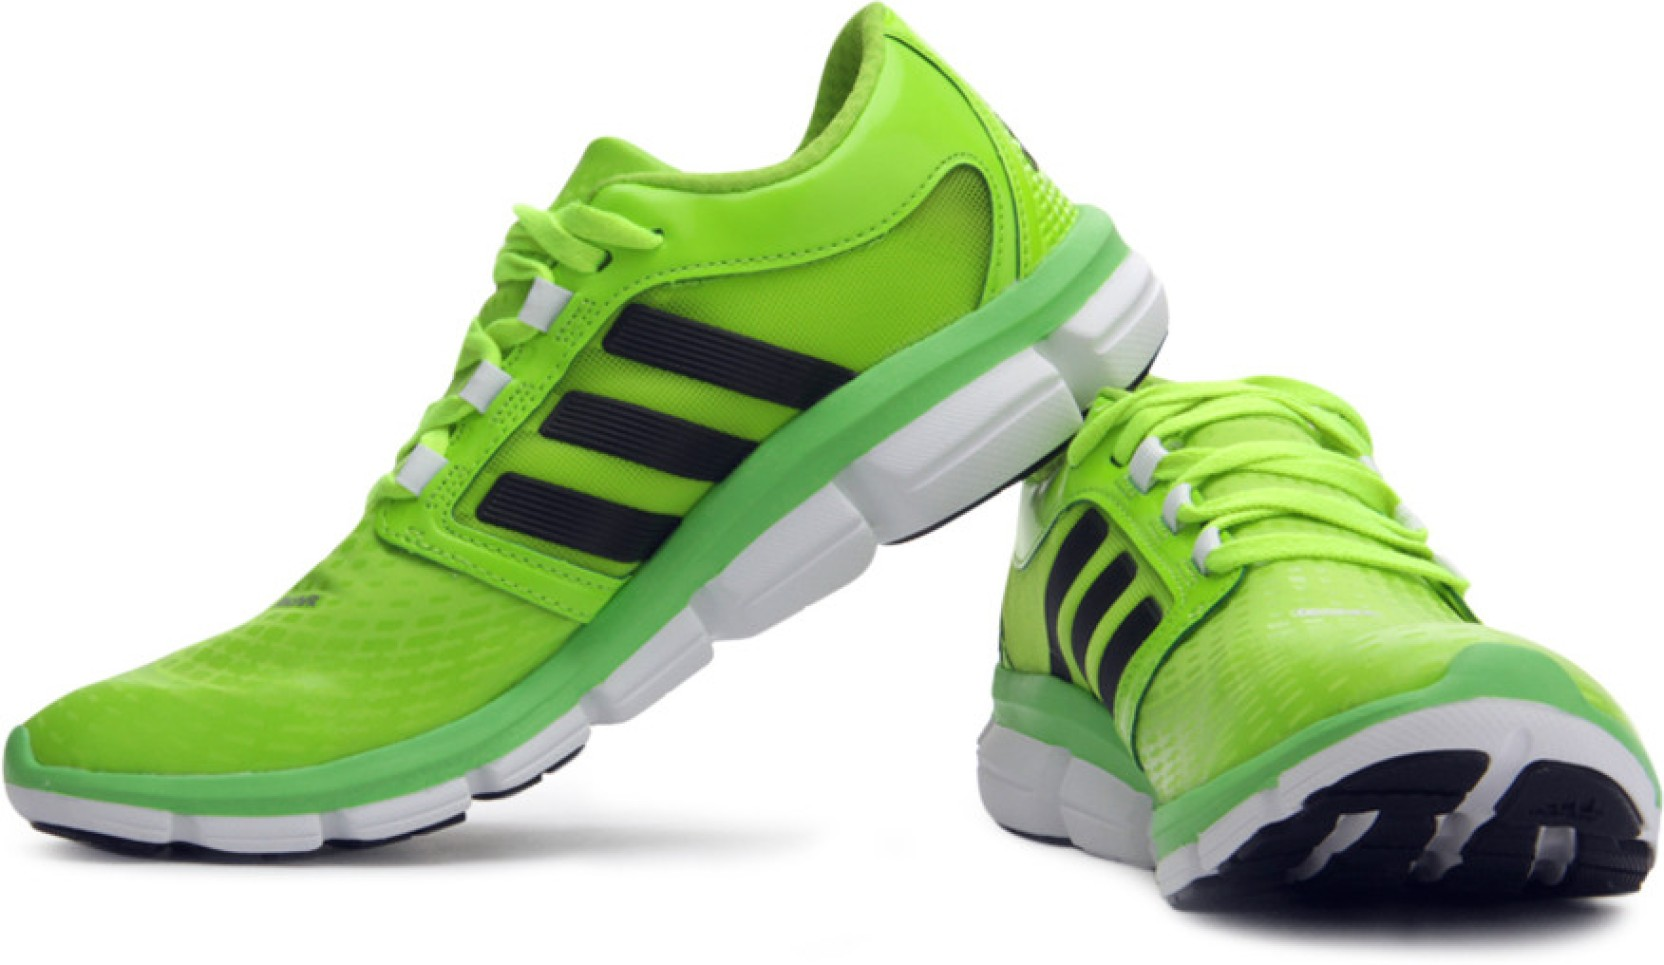 ADIDAS Adipure Ride M Running Shoes For Men